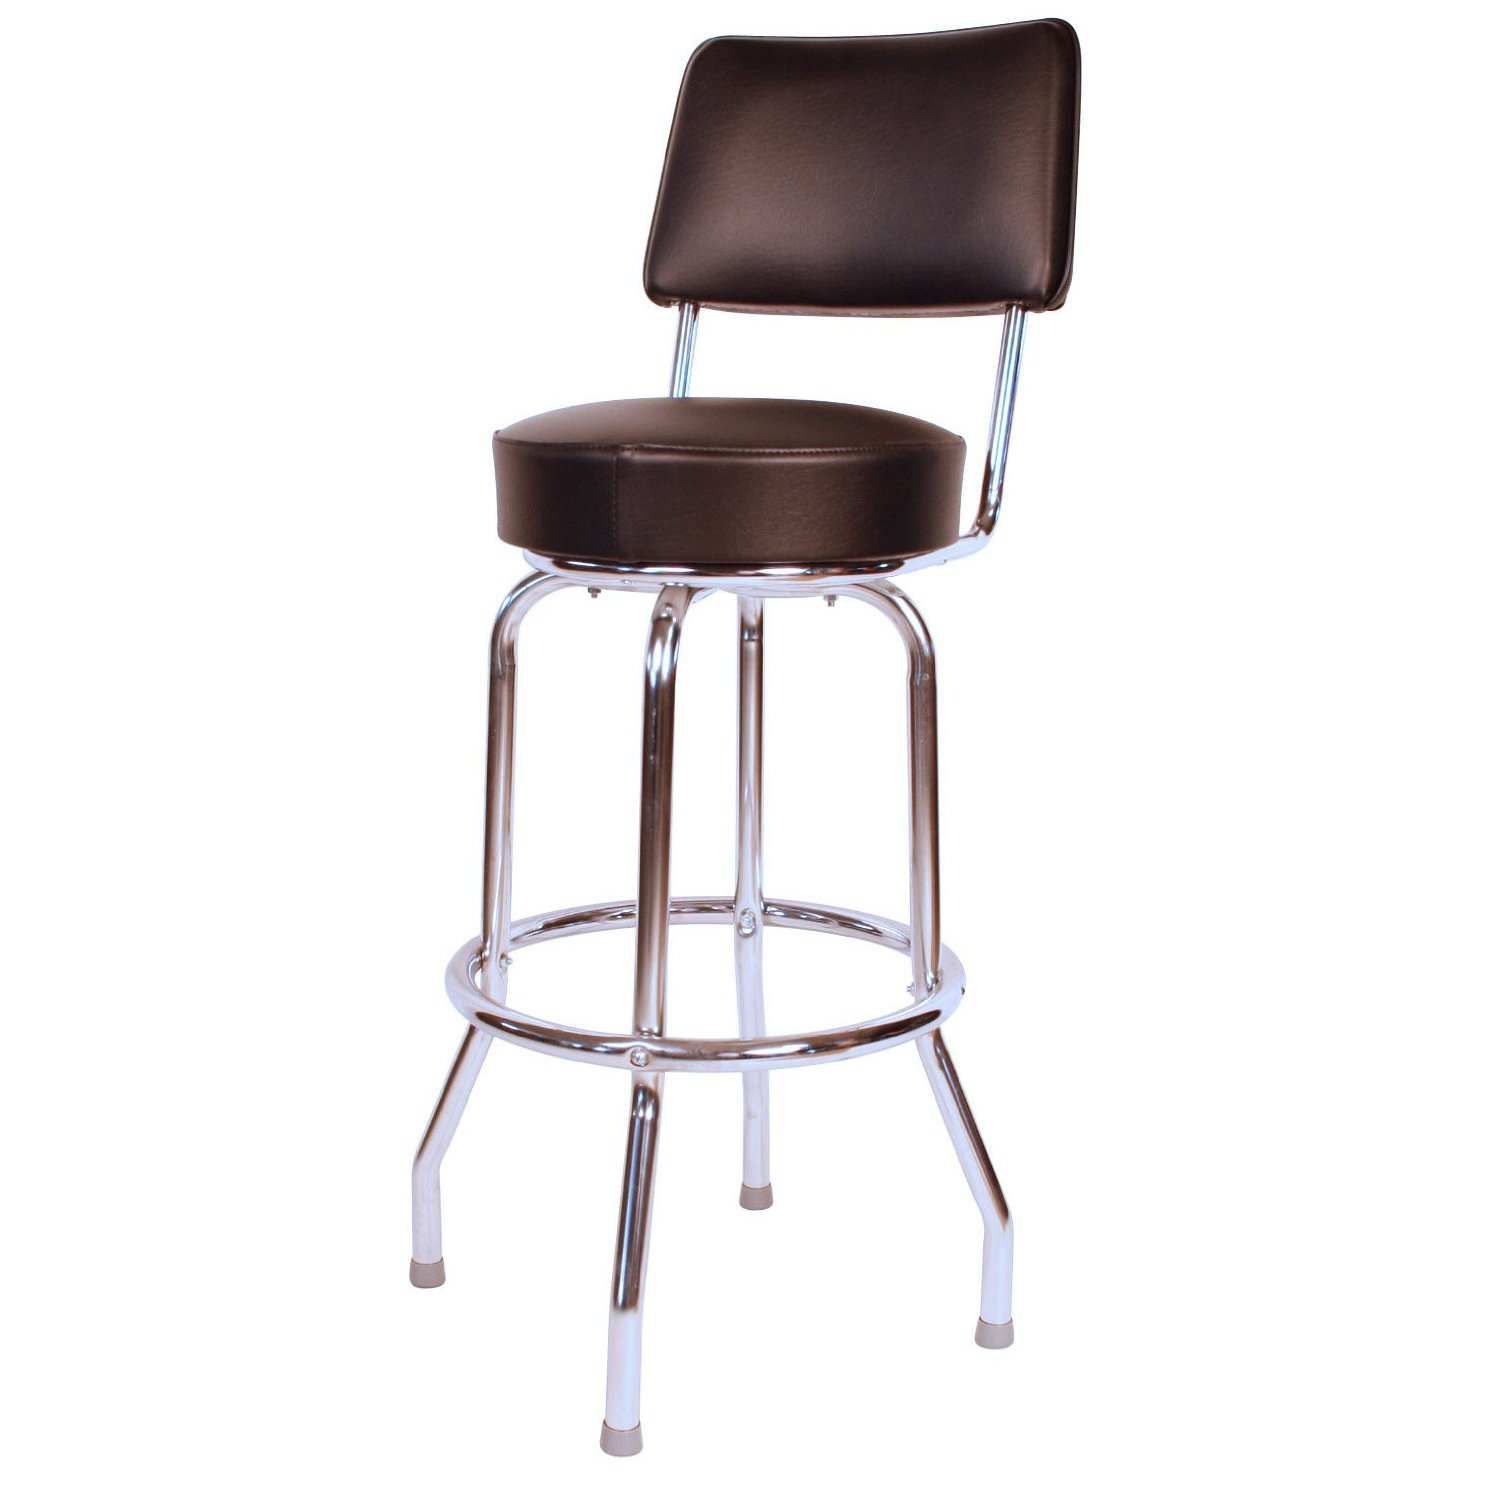 amusing swivel cymax bar stools with brown leather seat and back plus metal legs for inspiring home furniture ideas